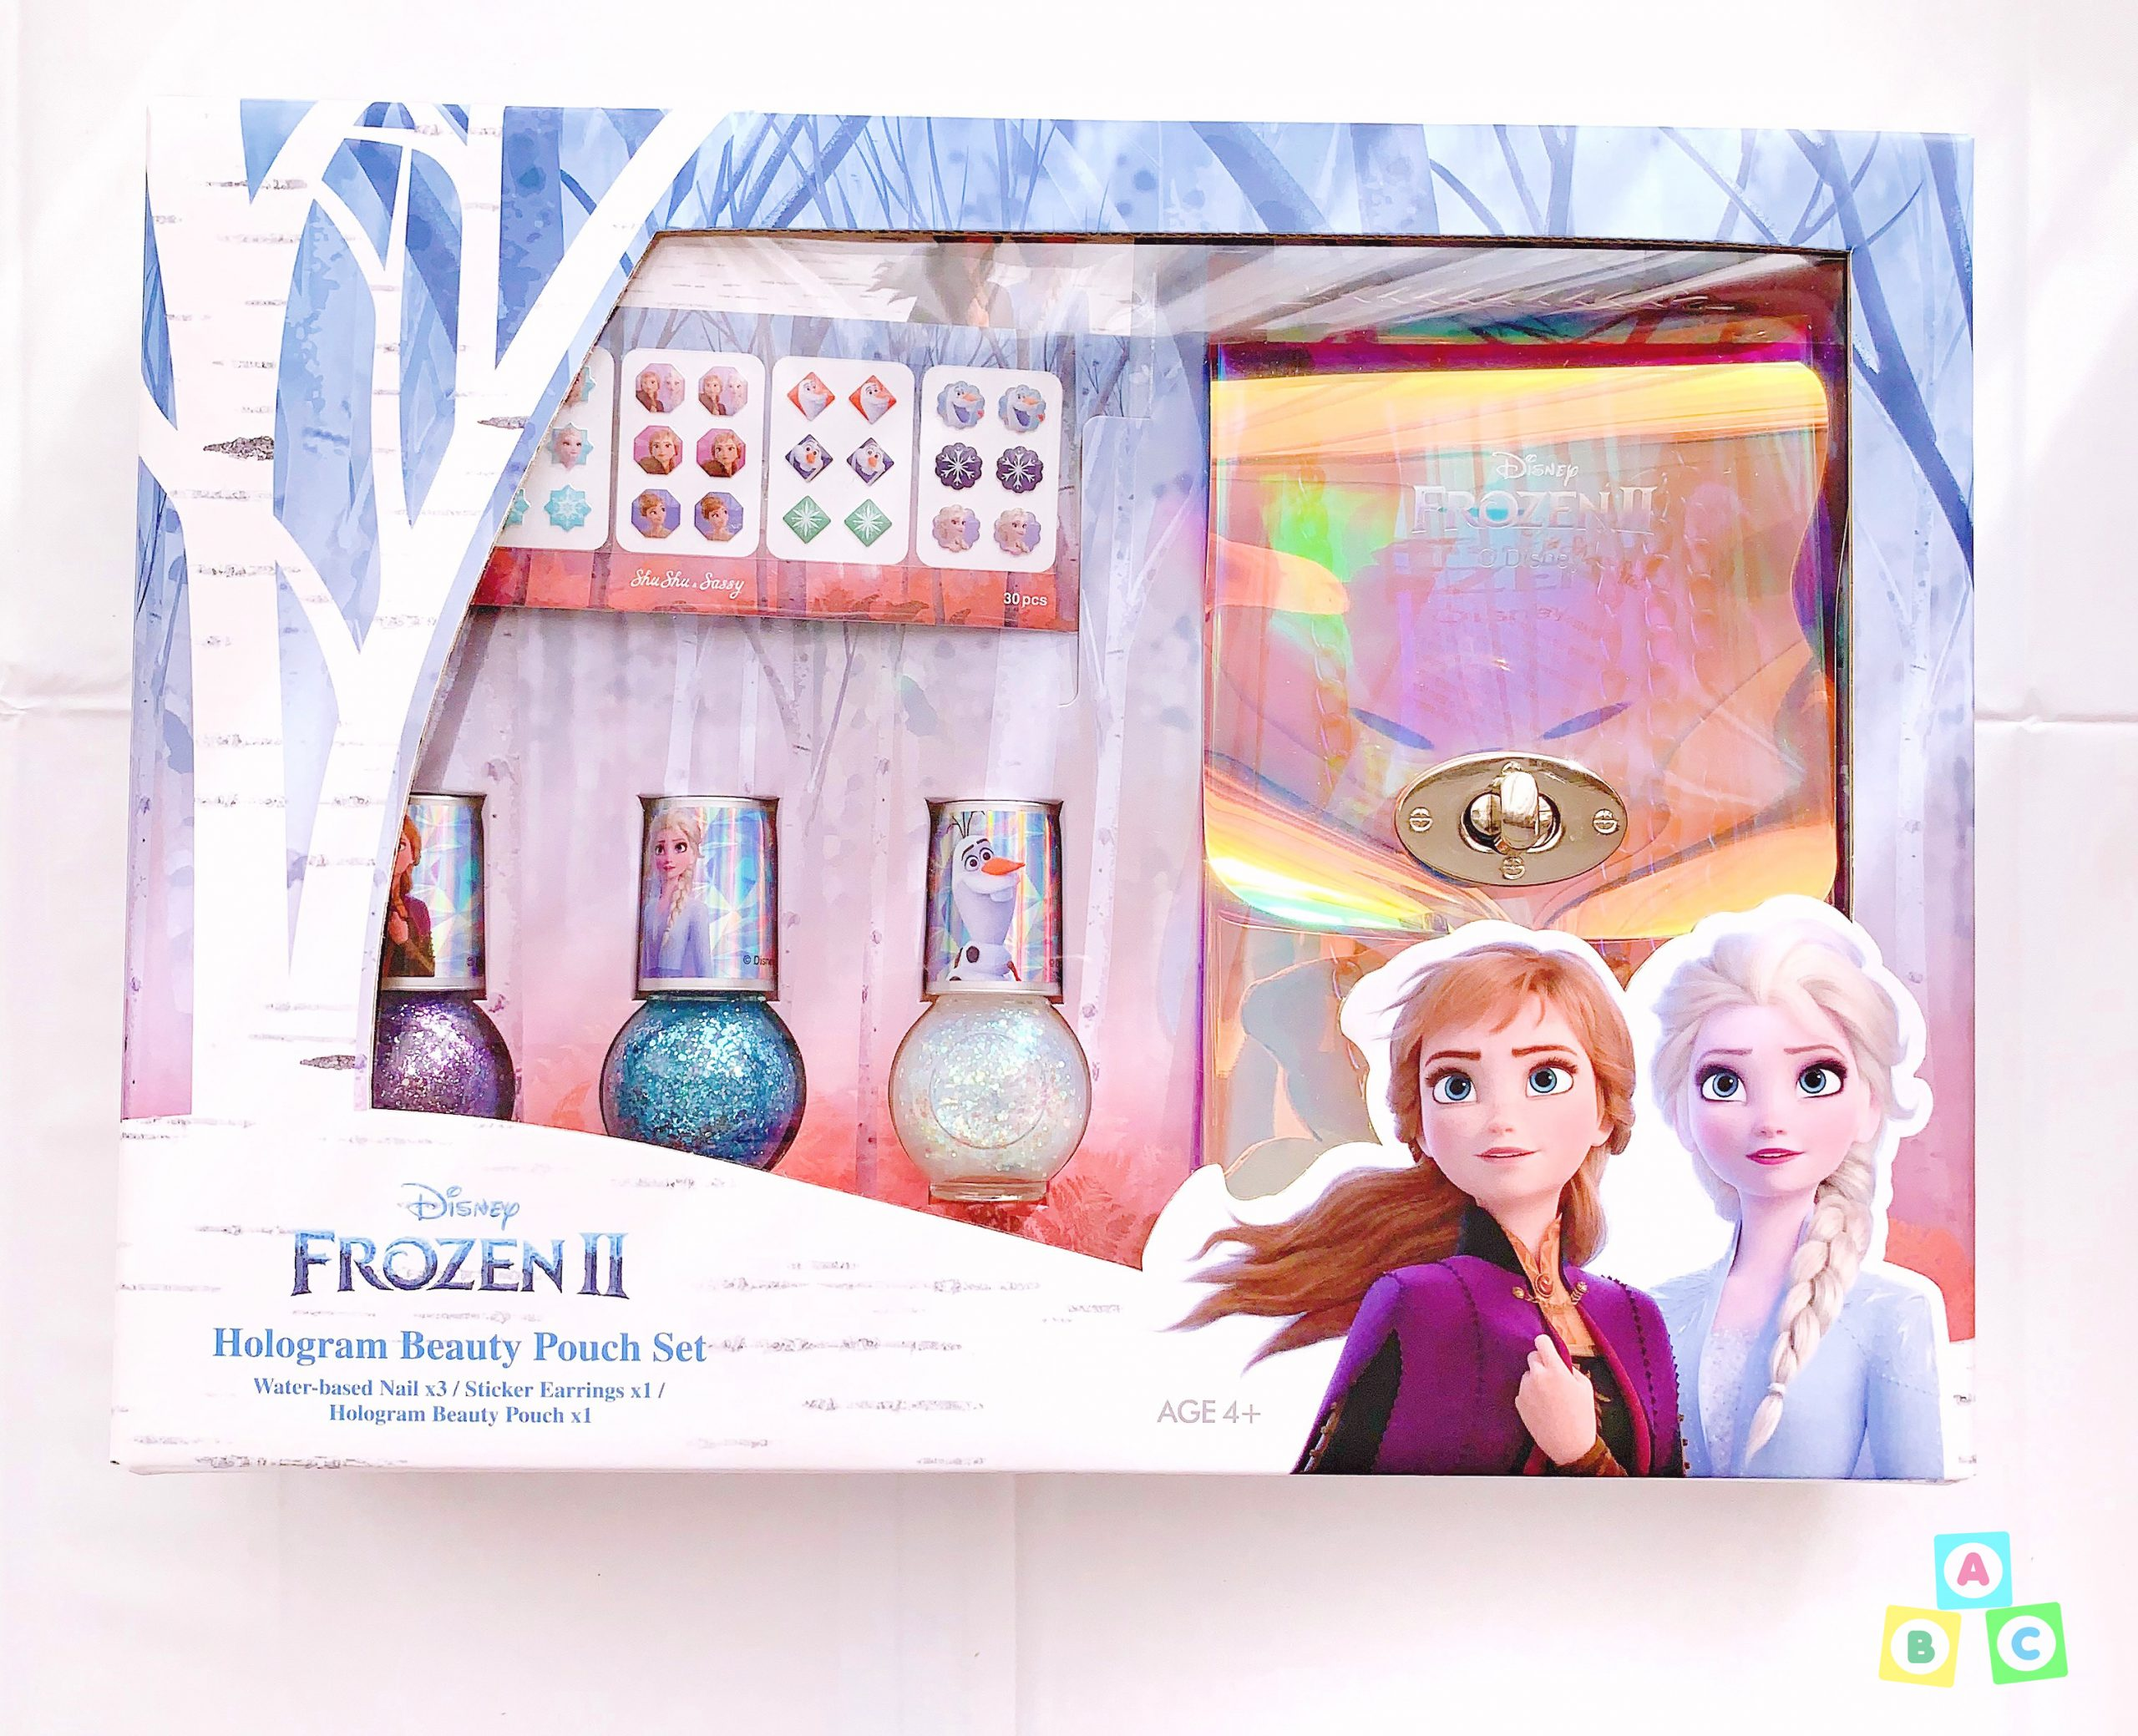 Shushu Sassy Frozen 2 Hologram Beauty Pouch Set